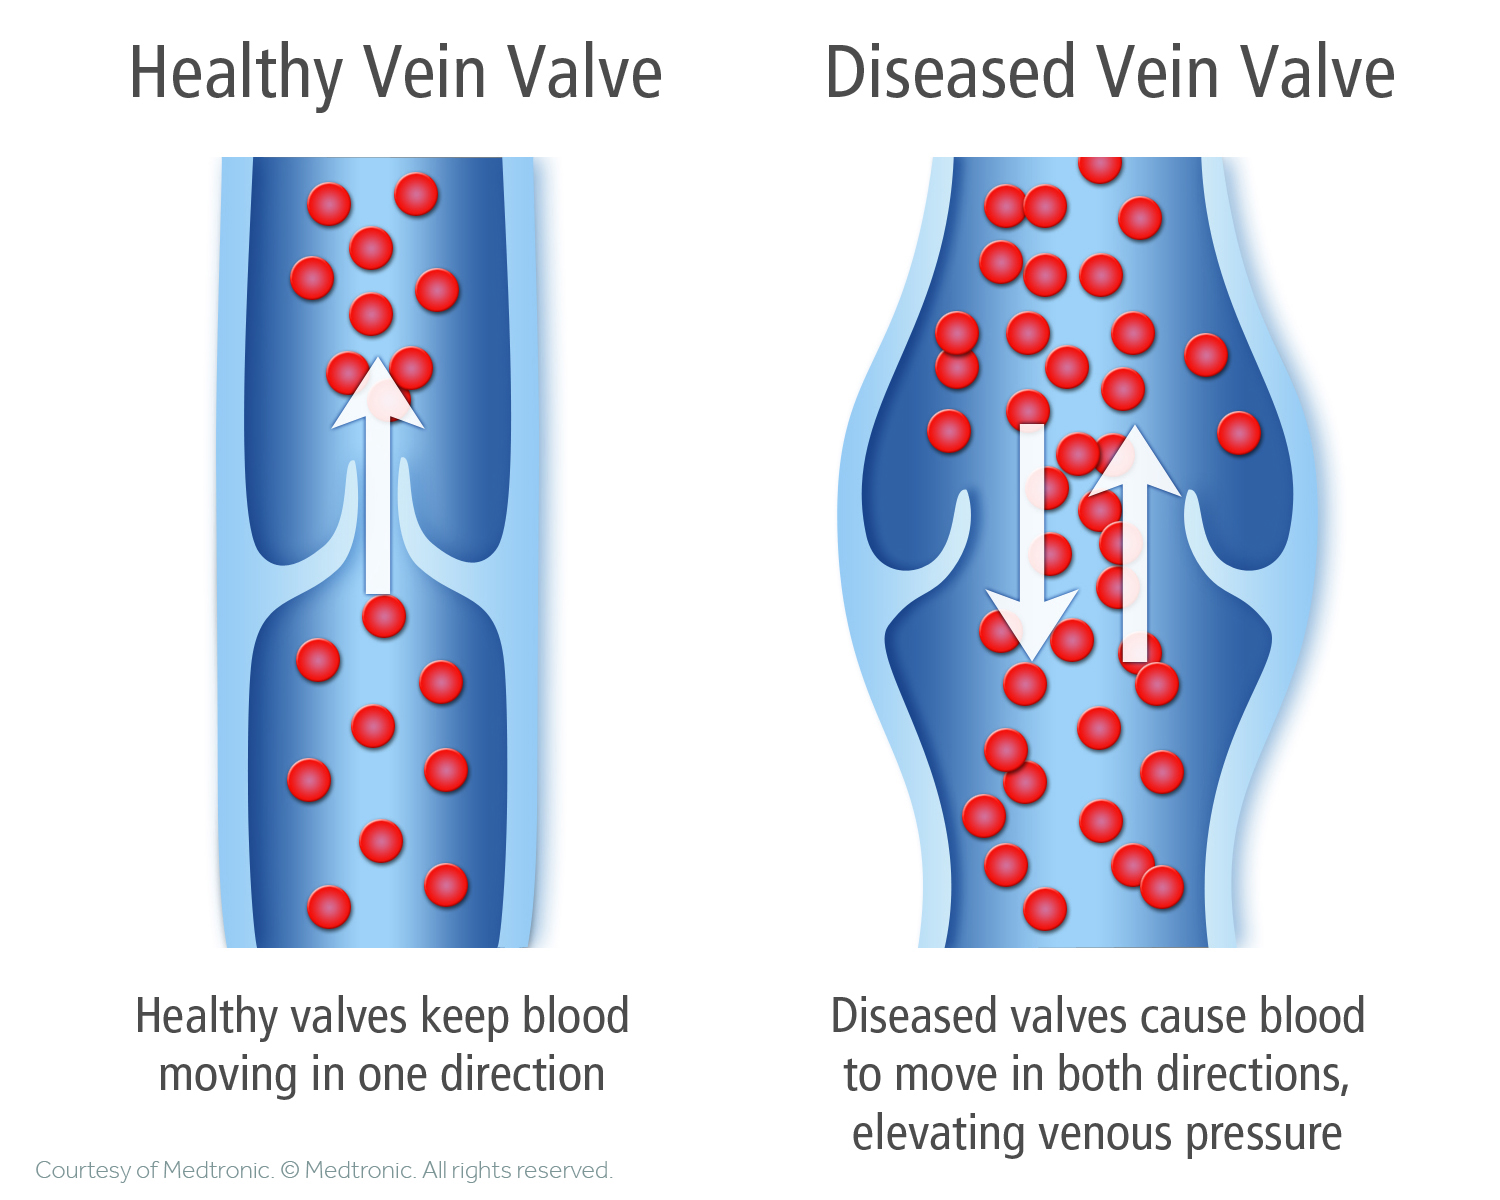 Healthy-vs.-Diseased-Vein-Valve-2-Illustration.jpg